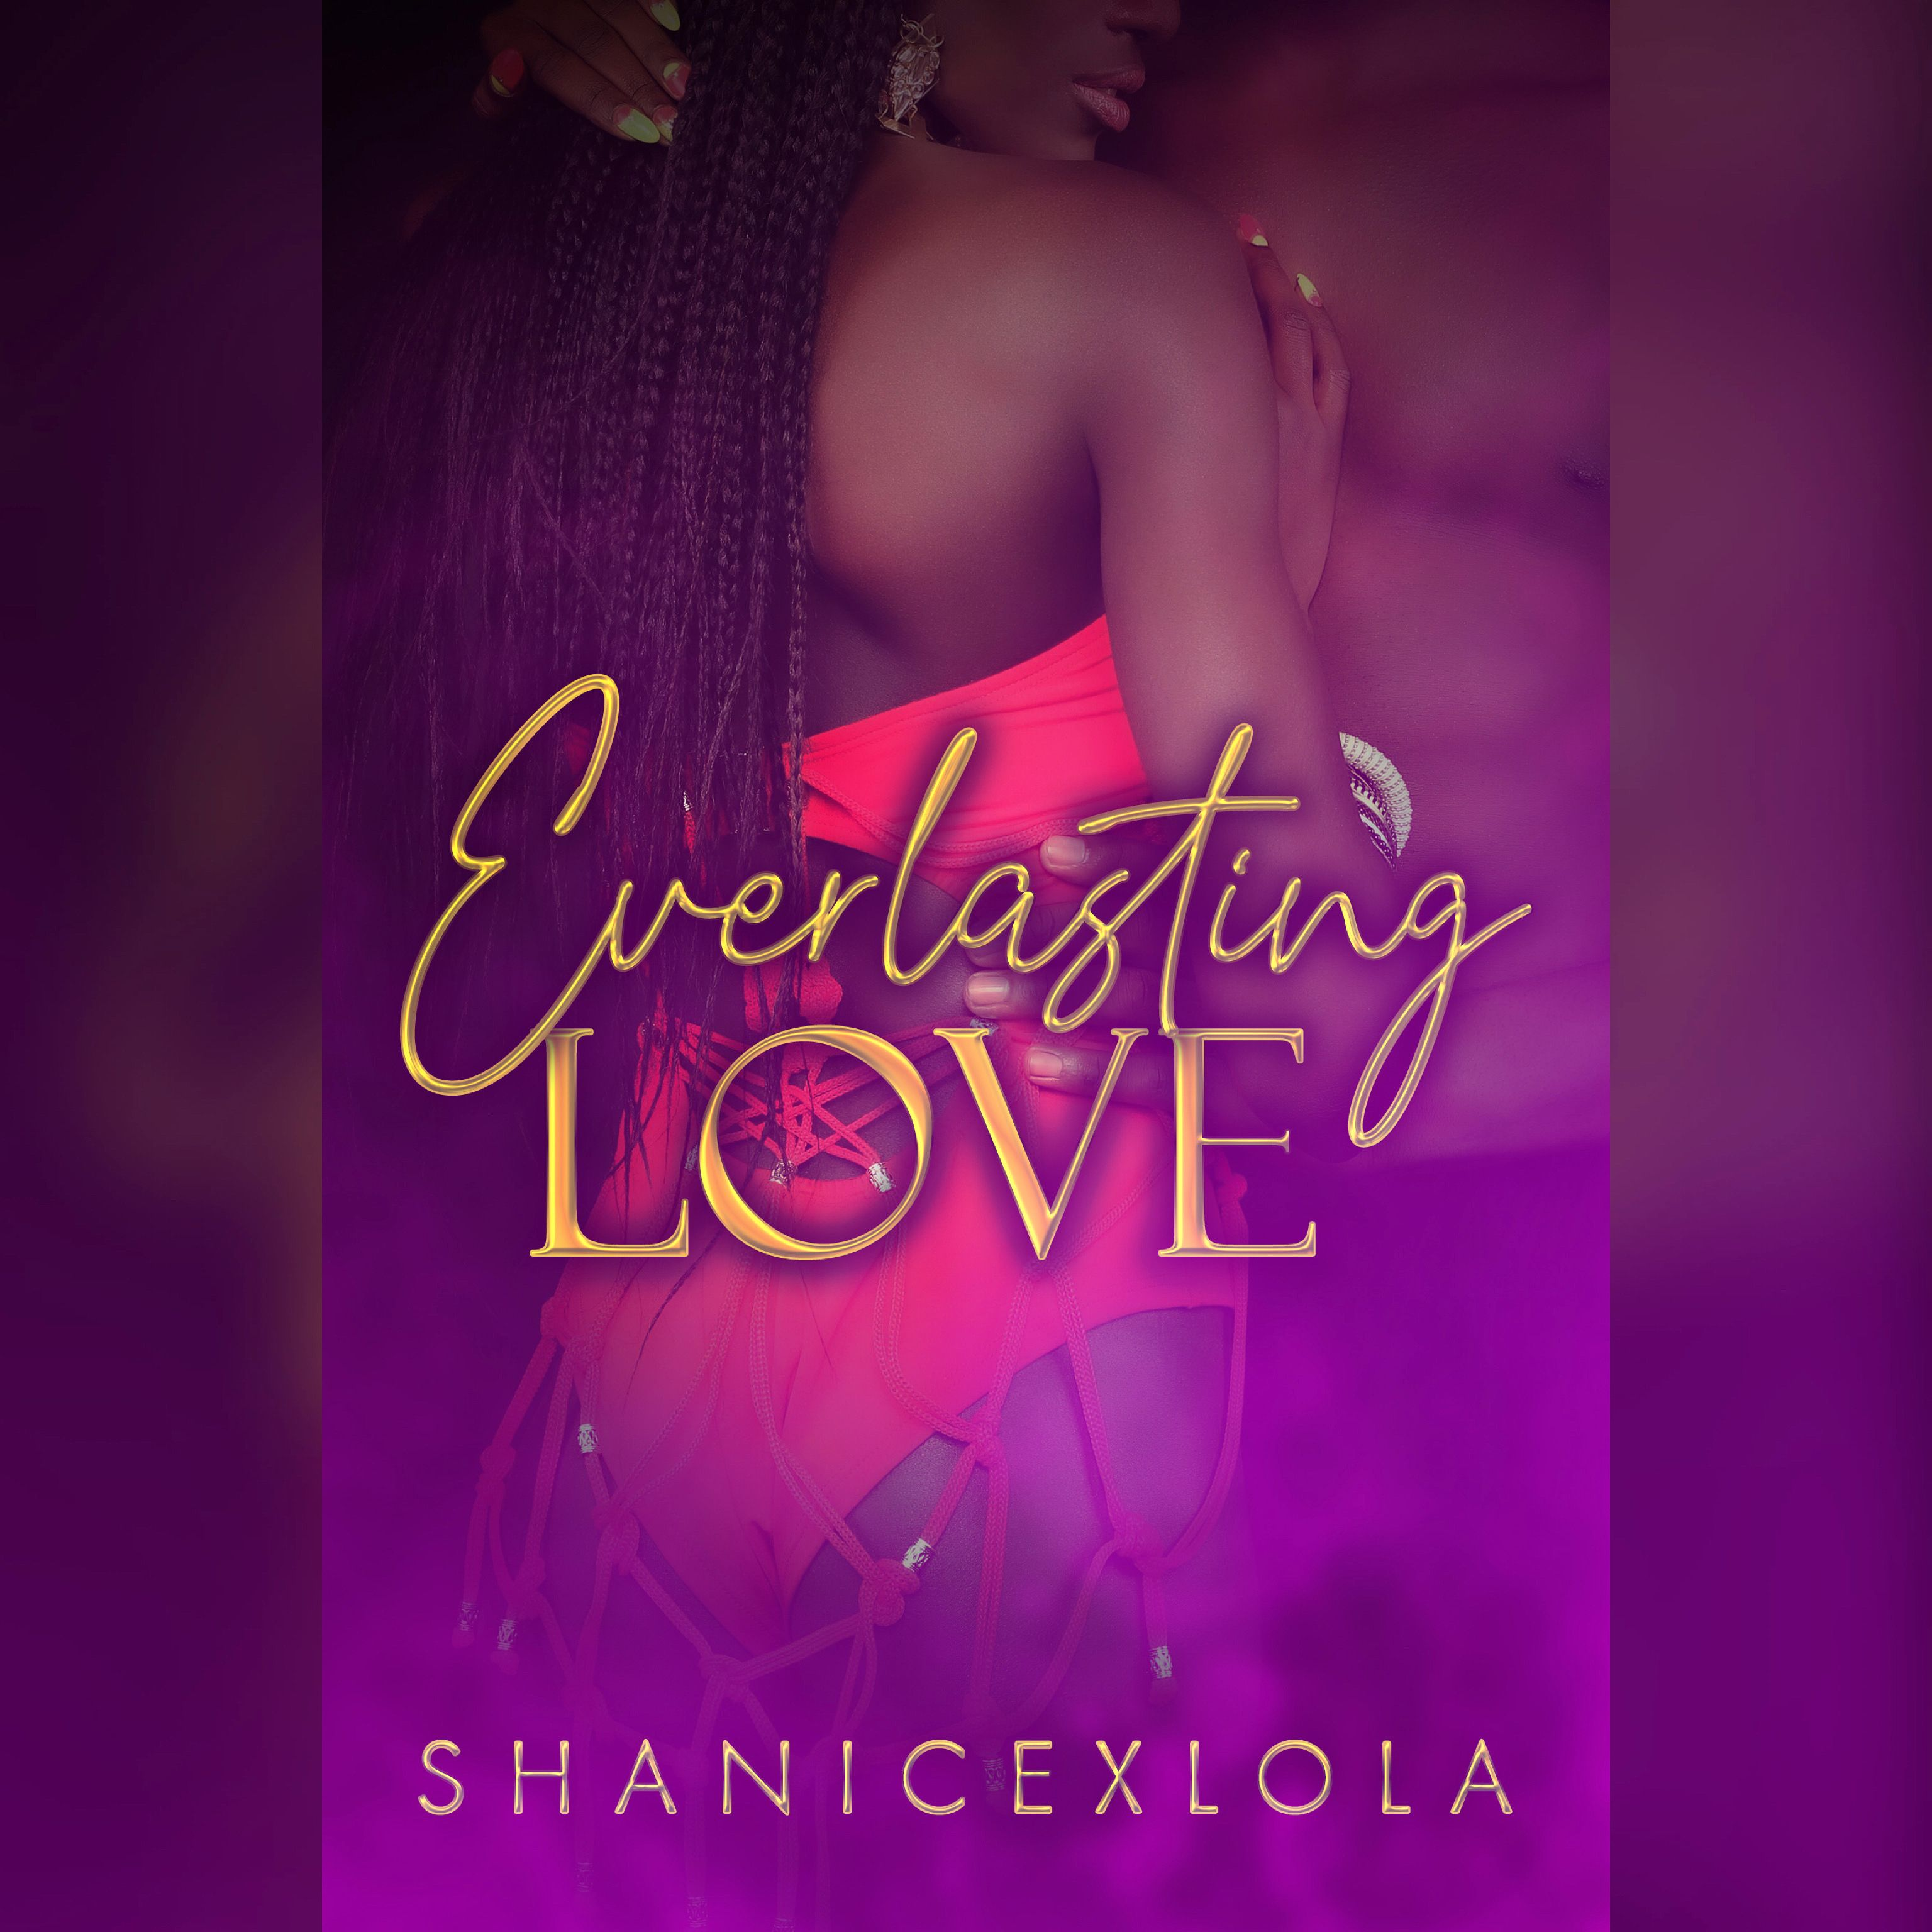 Pin By Sxl Publications On Molli Hill Everlasting Love In 2020 Everlasting Love Romance Novels Neon Signs